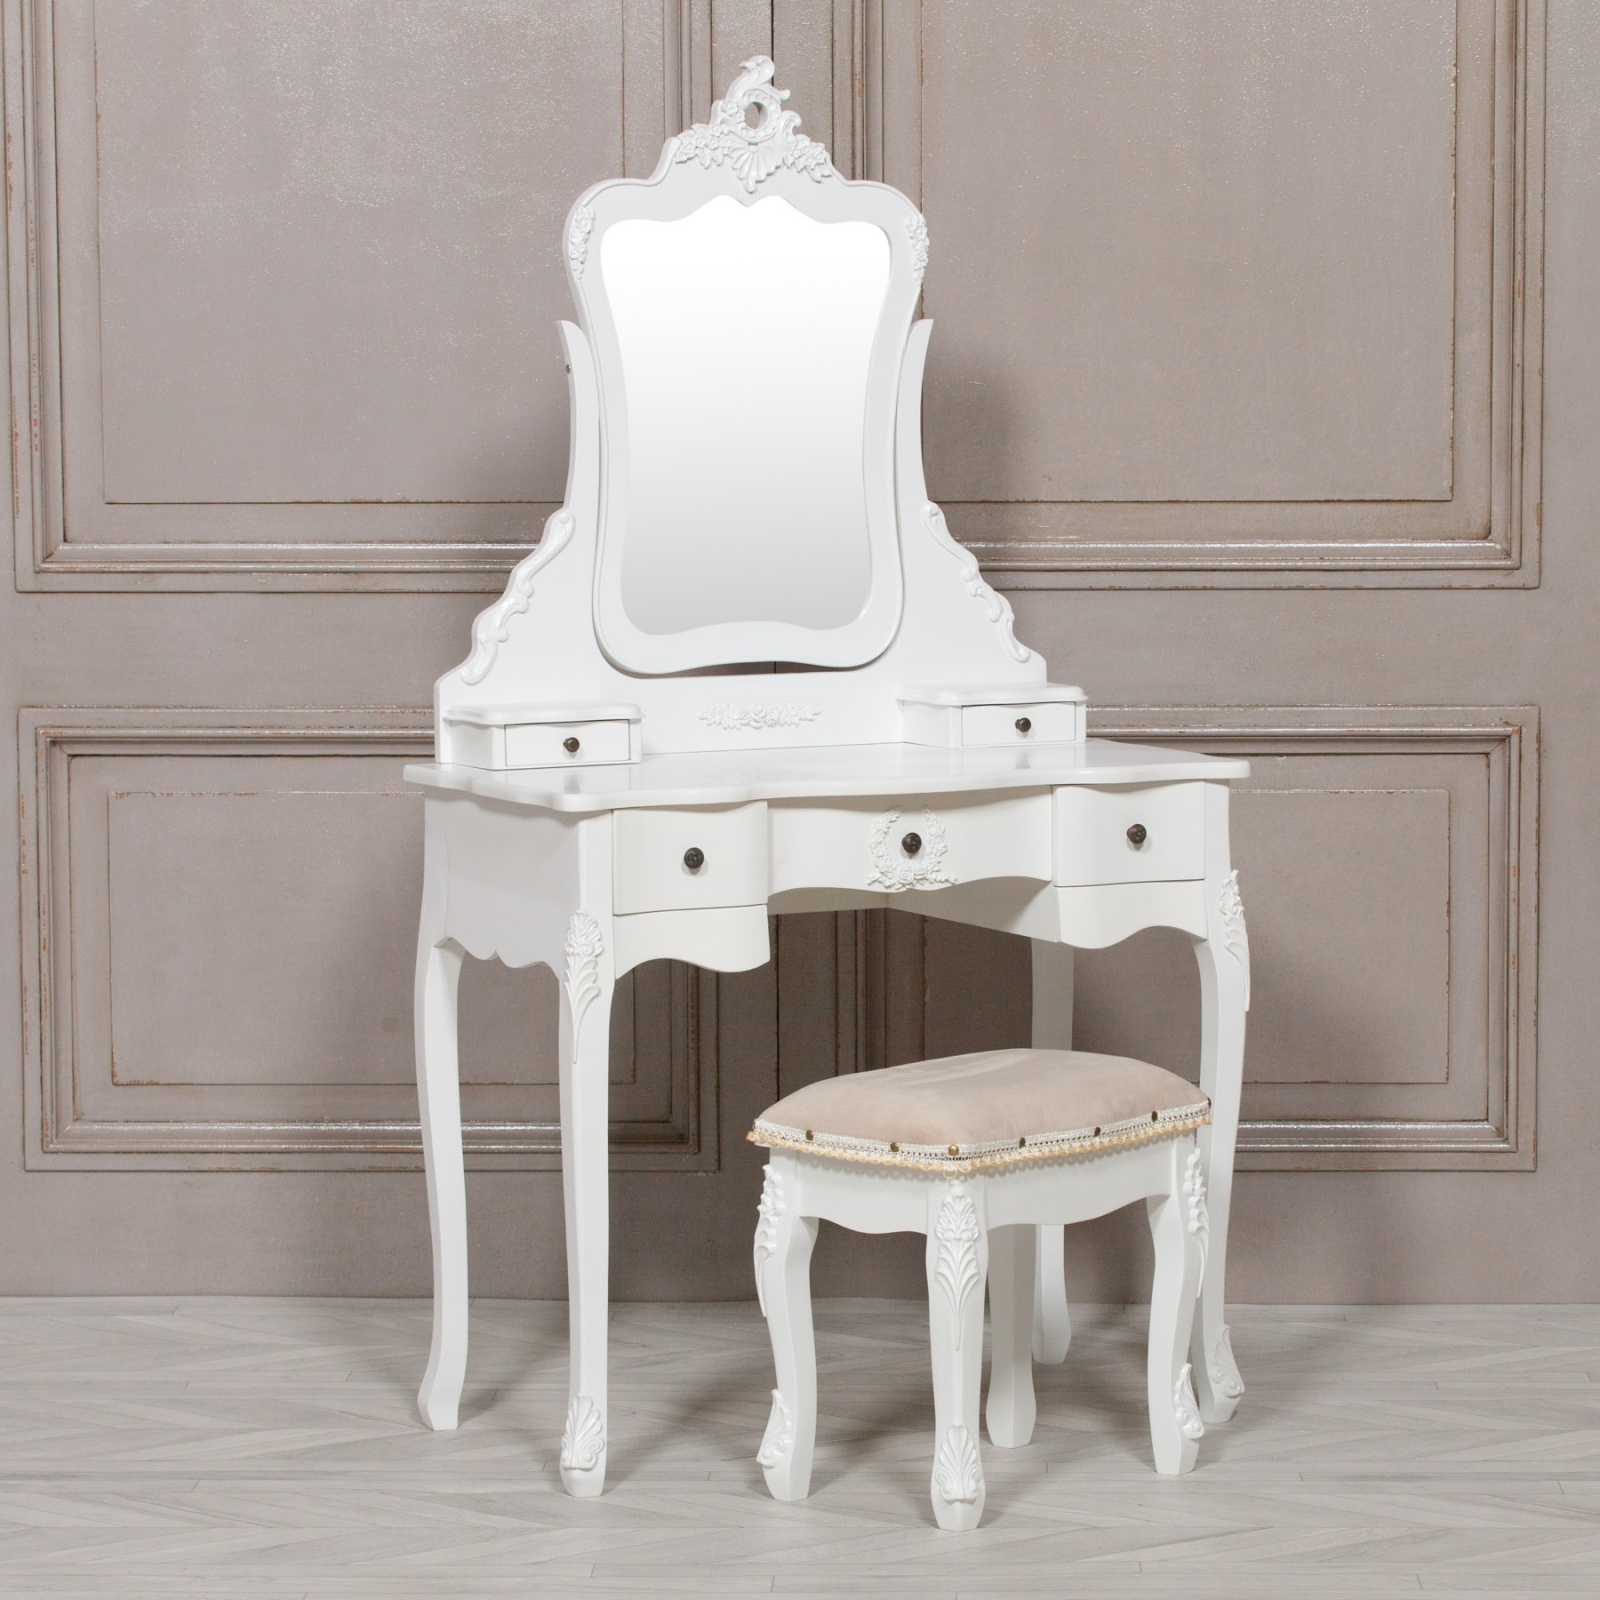 Dressing Maison Annabelle French Style White Dressing Table And Stool